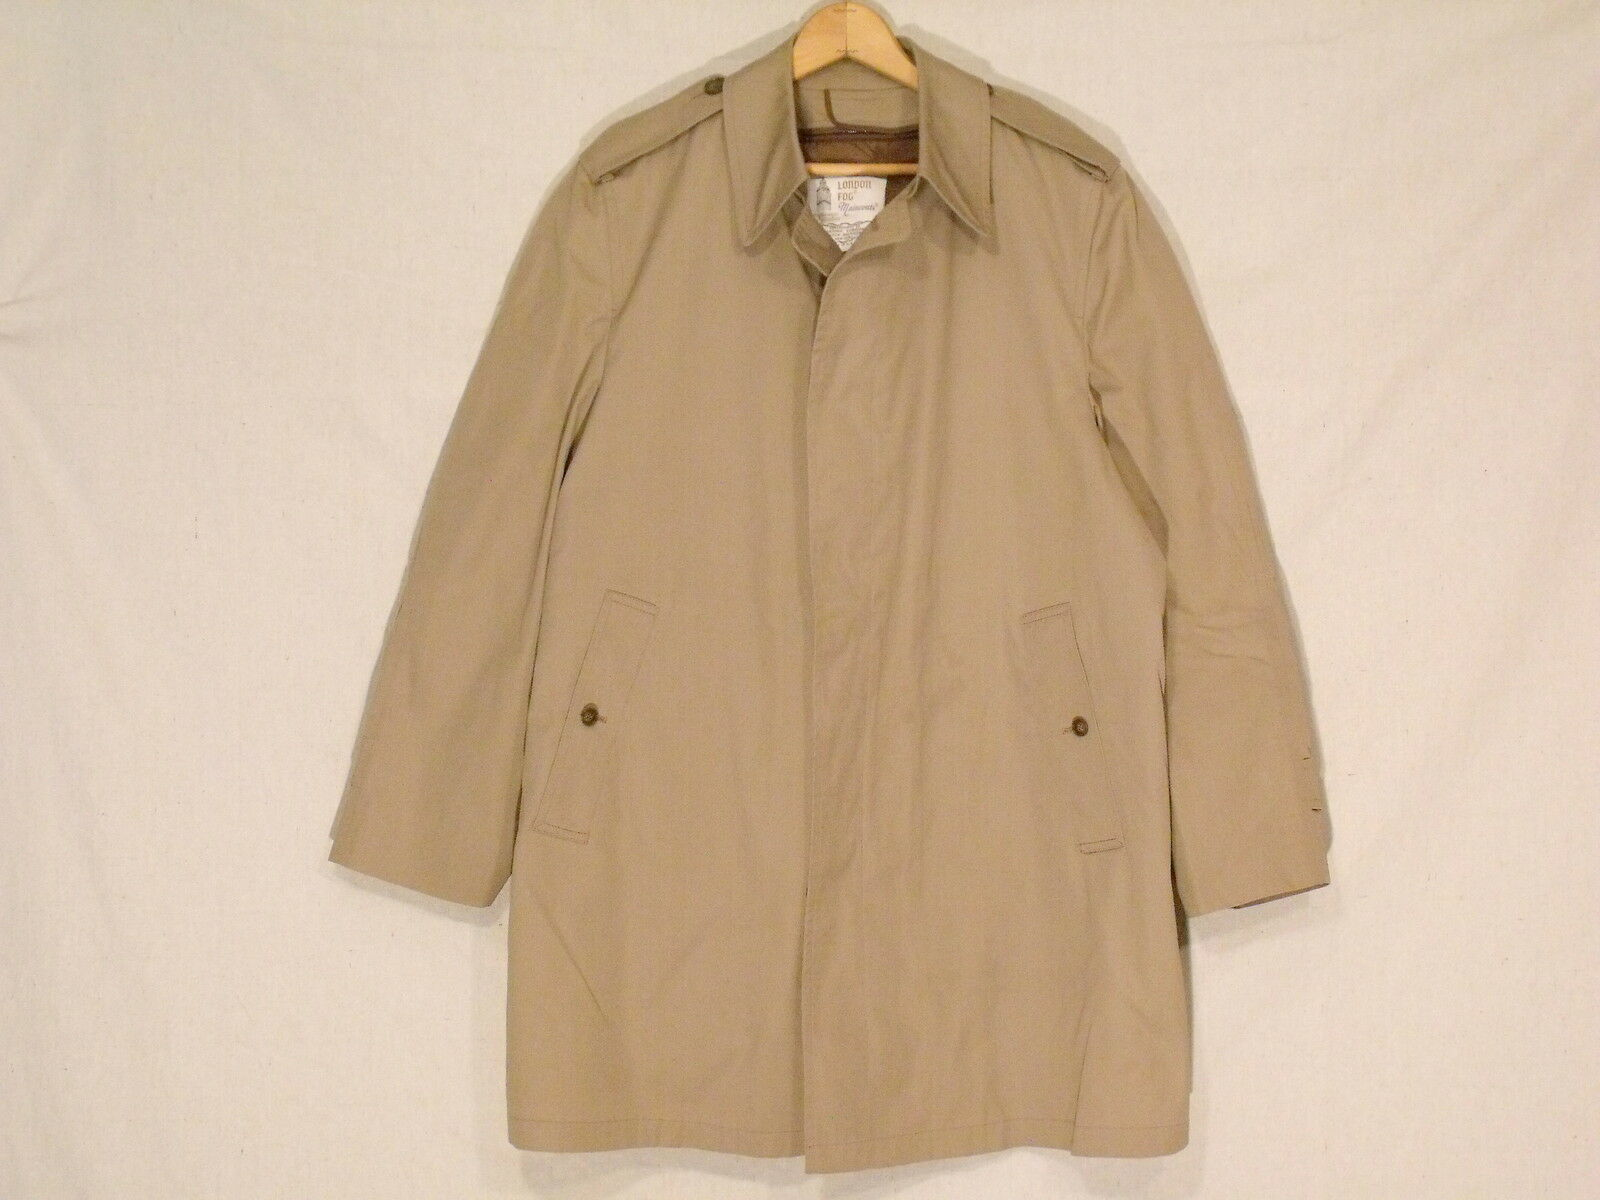 535113d66bee3 London Fog Maincoats midlength lined button trench coat 42R fantastic b14